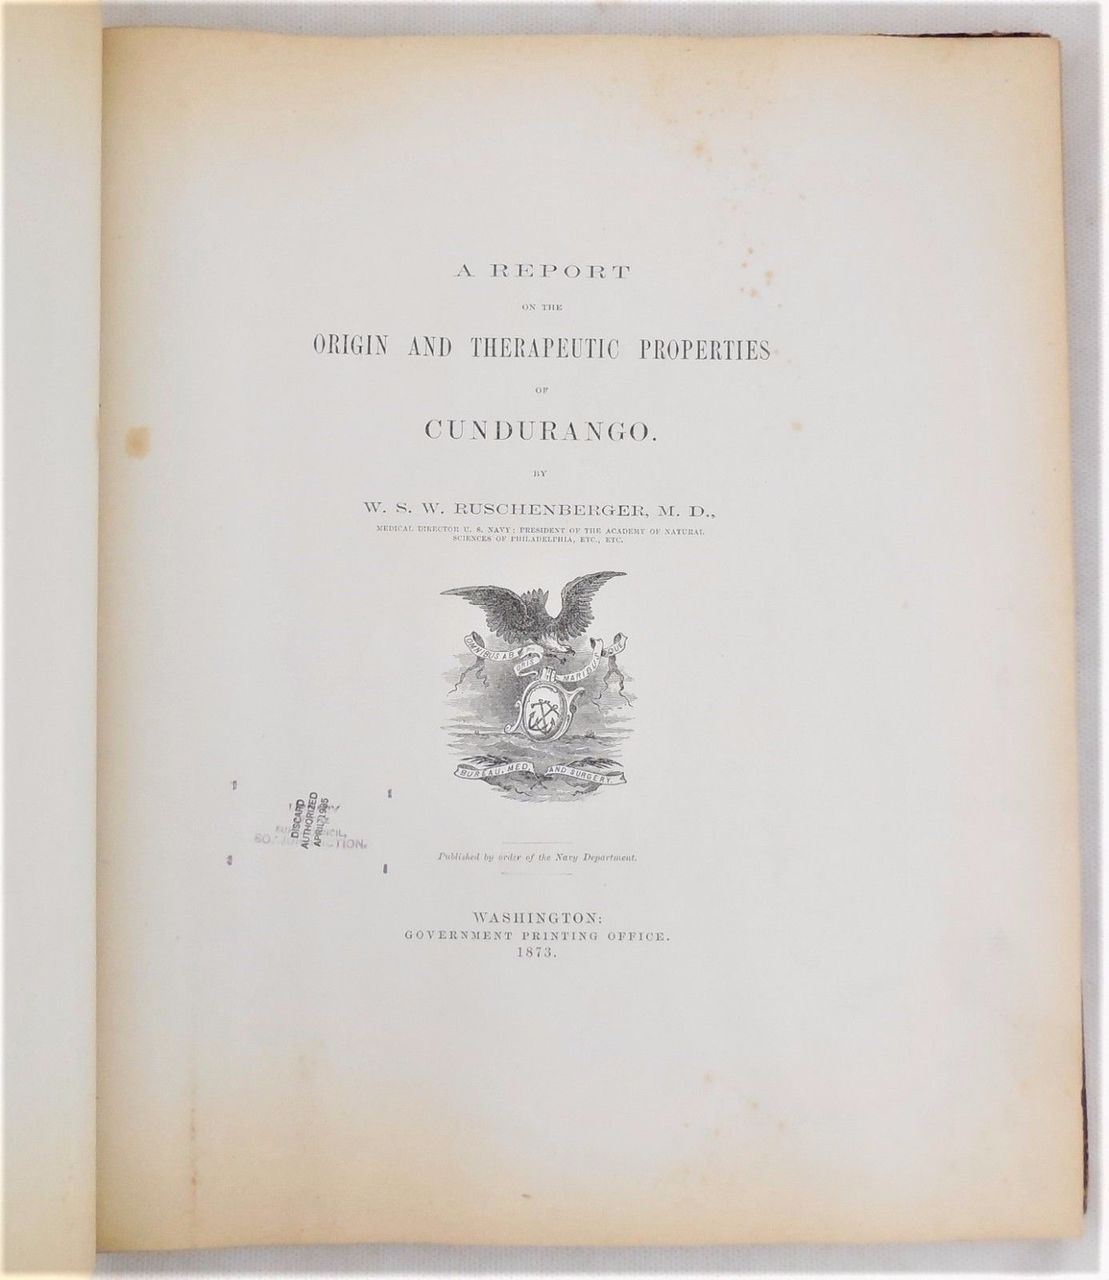 A REPORT ON THE ...CUNDURANGO, by W.S.W. Ruschenberger - 1873